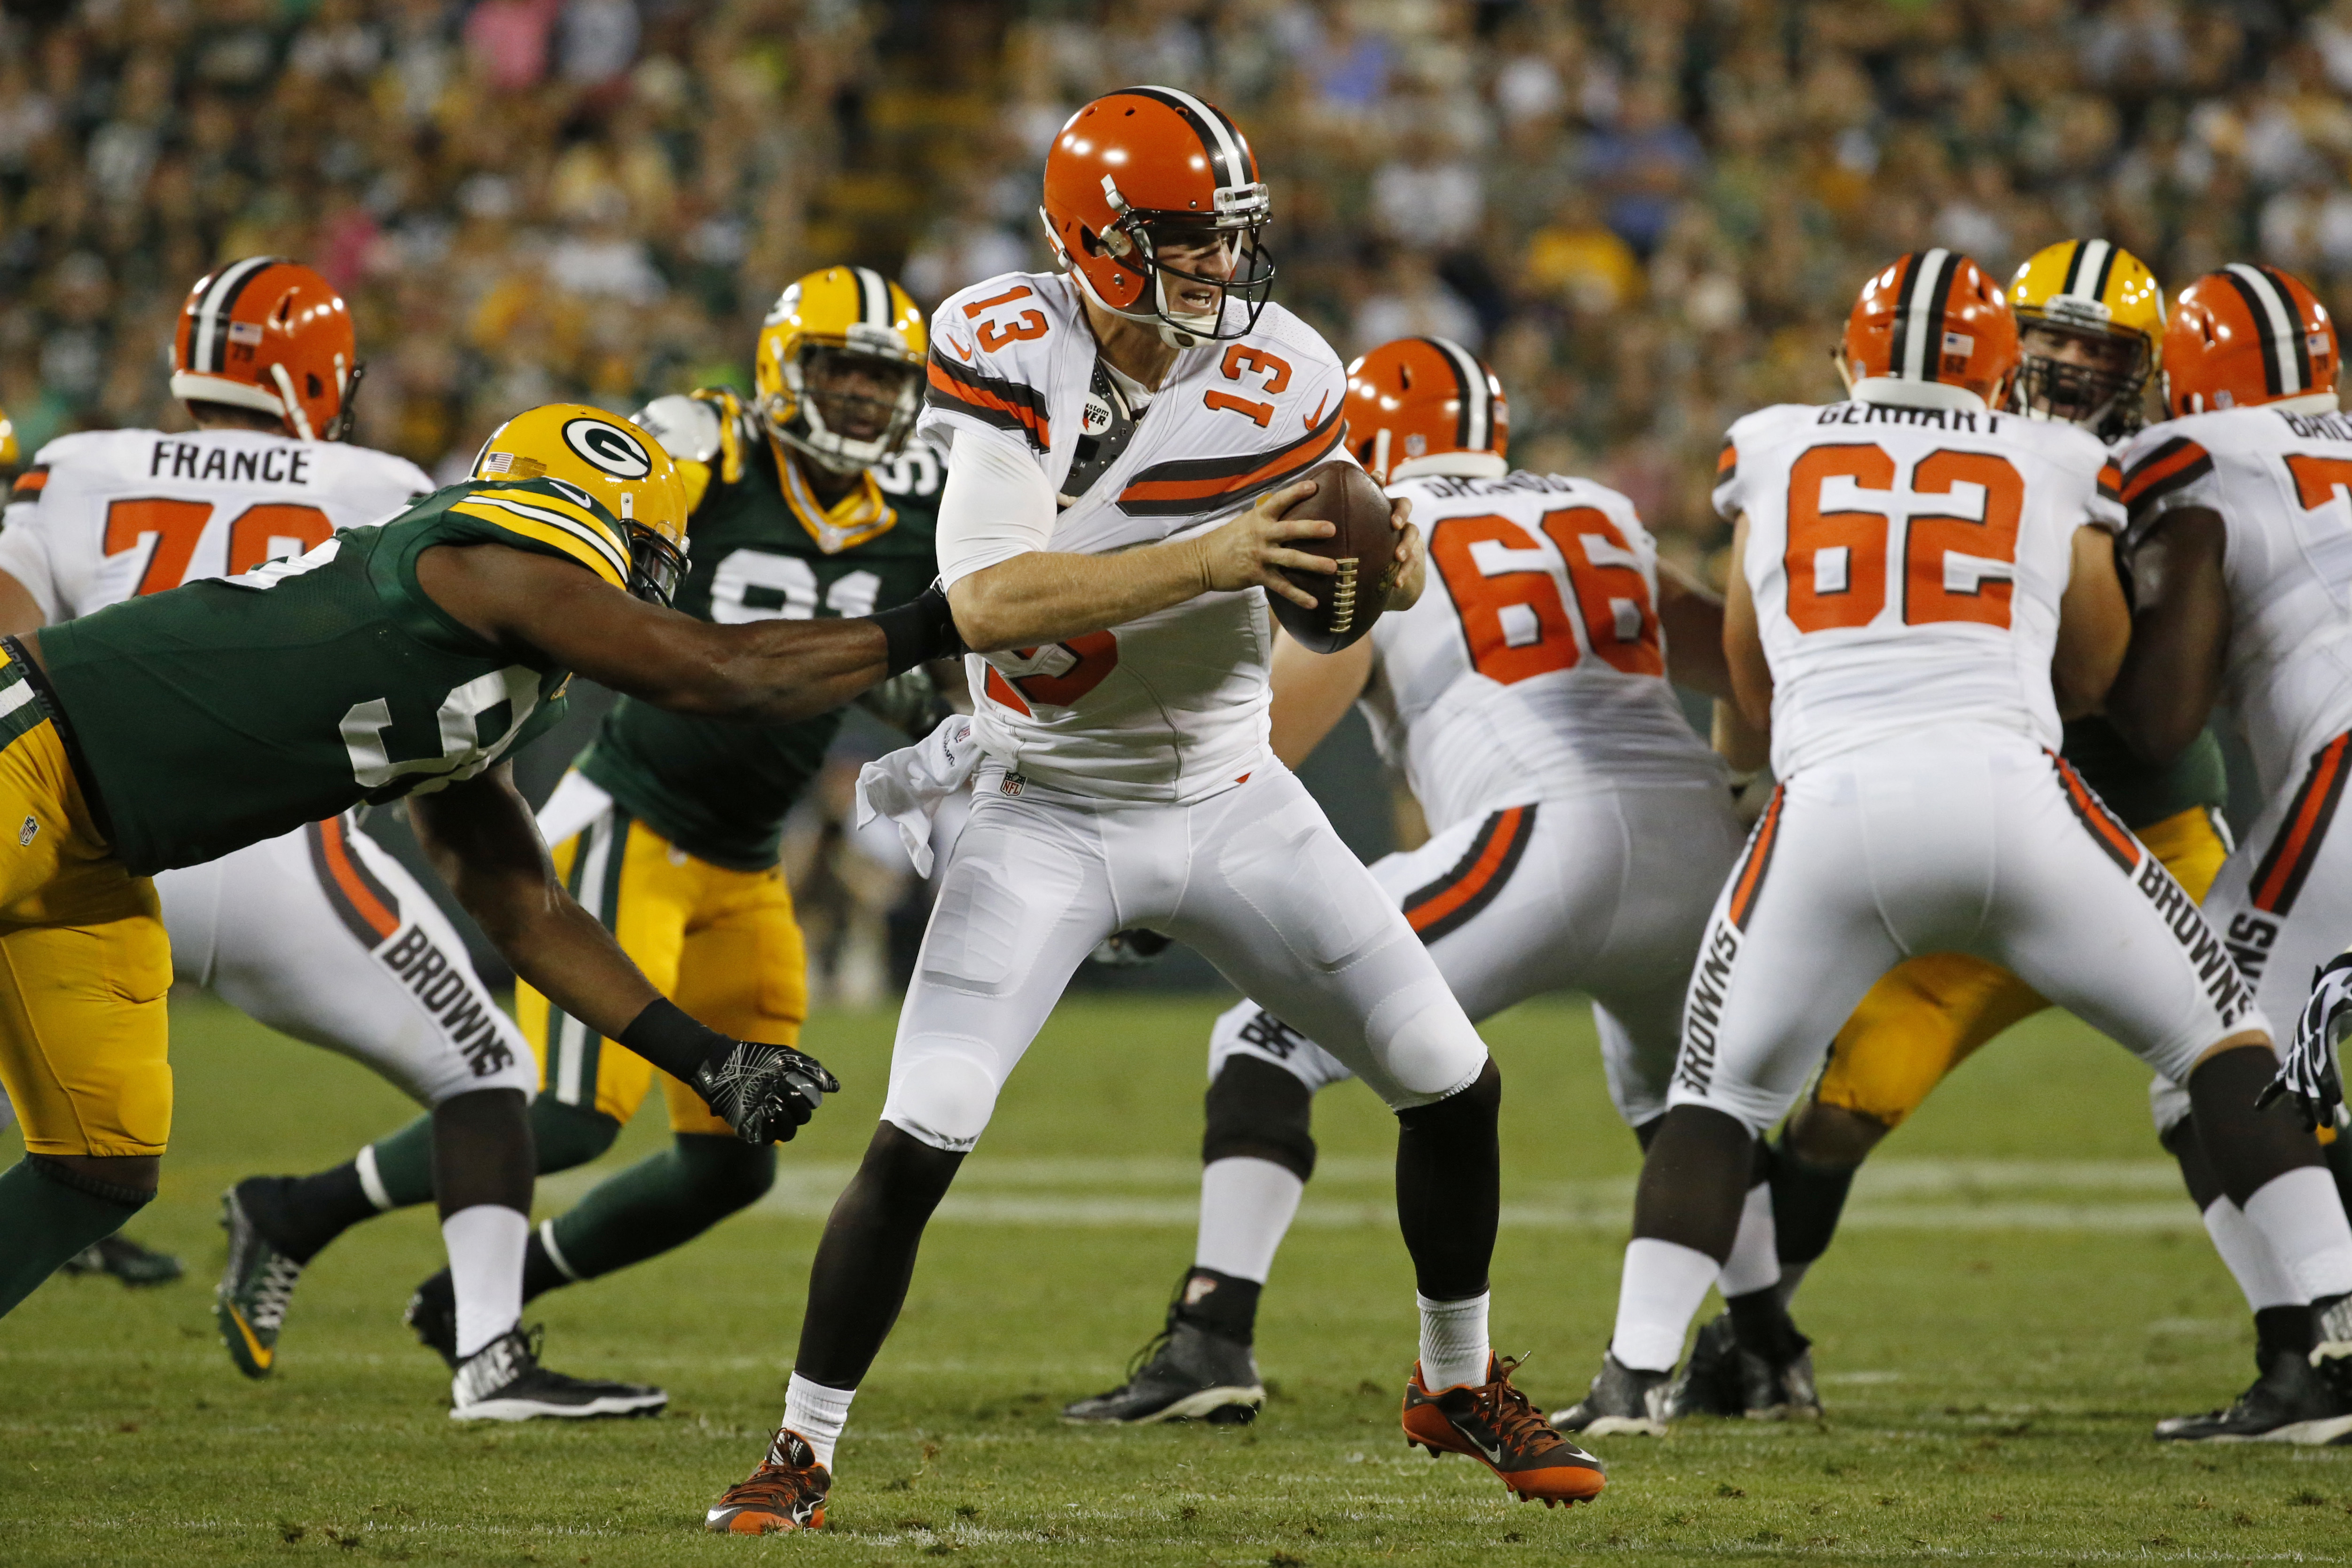 Green Bay Packers defensive end Datone Jones (95) sacks Cleveland Browns quarterback Josh McCown (13) in the first half of an NFL preseason football game in Green Bay, Wis., Friday, Aug. 12, 2016. (AP Photo/Mike Roemer)